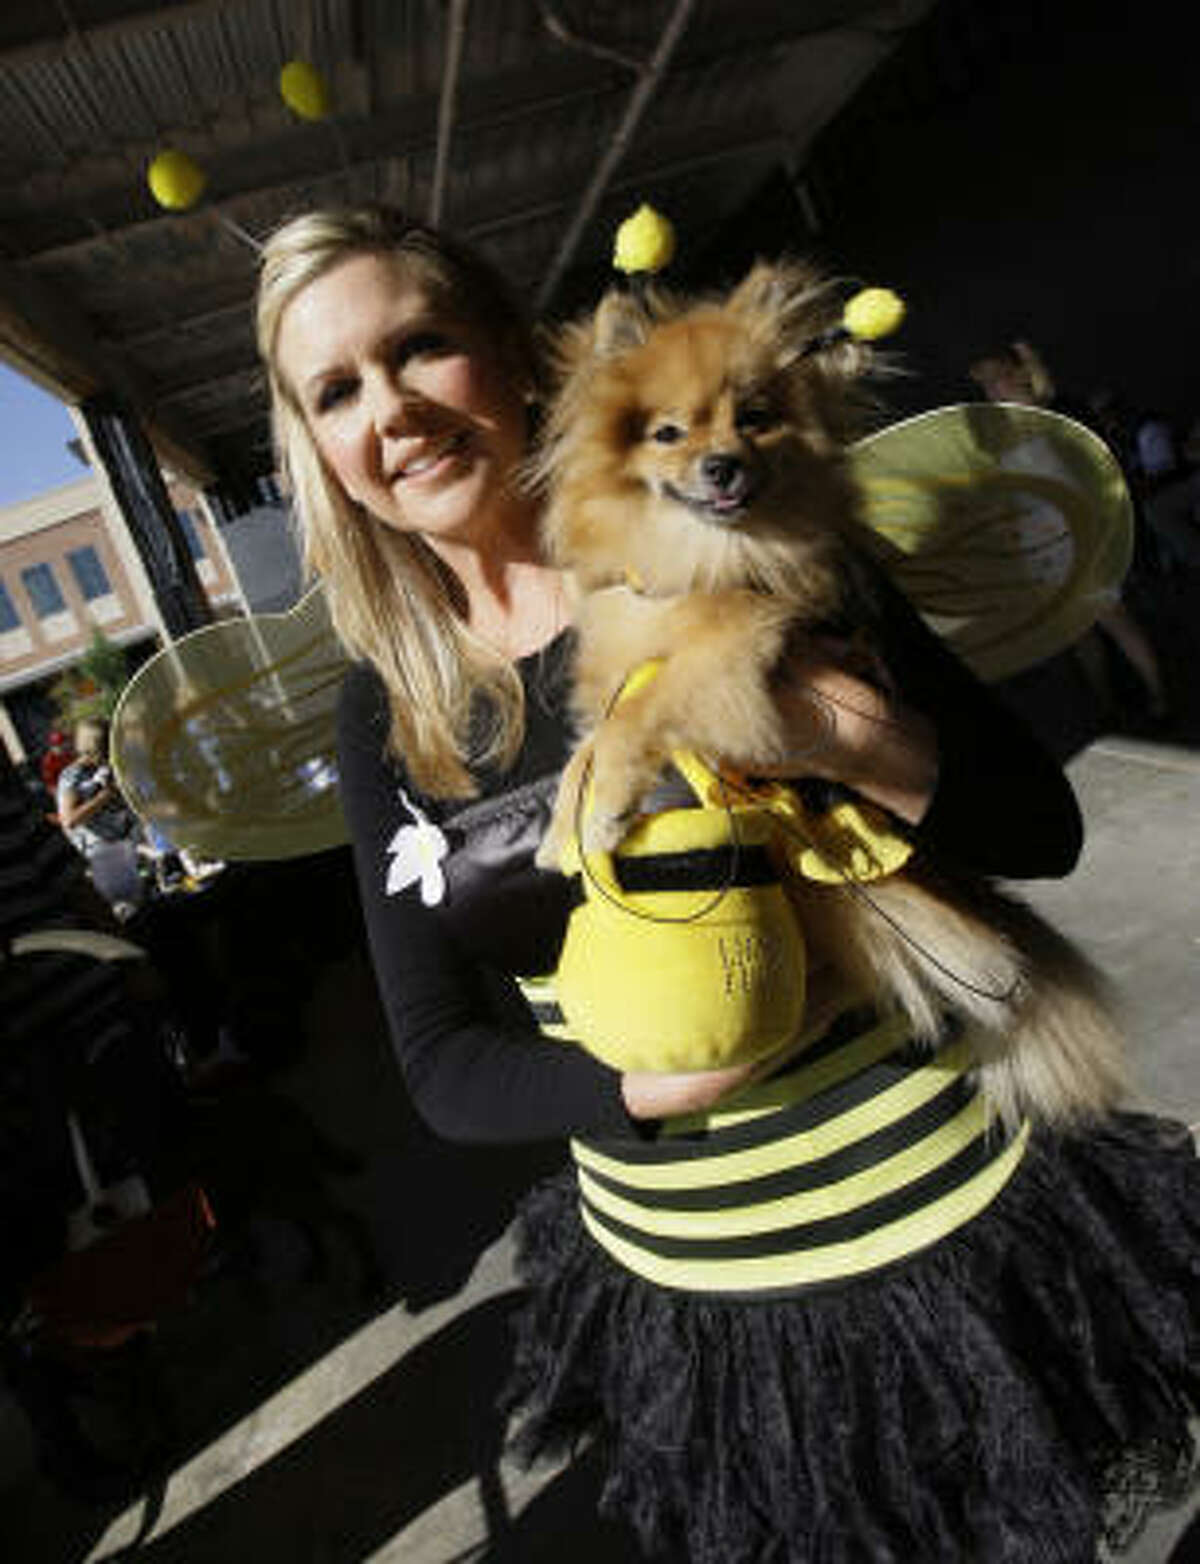 When in doubt, dressing as a bee, ladybug or butterfly are always a cute, non-spooky costume idea.